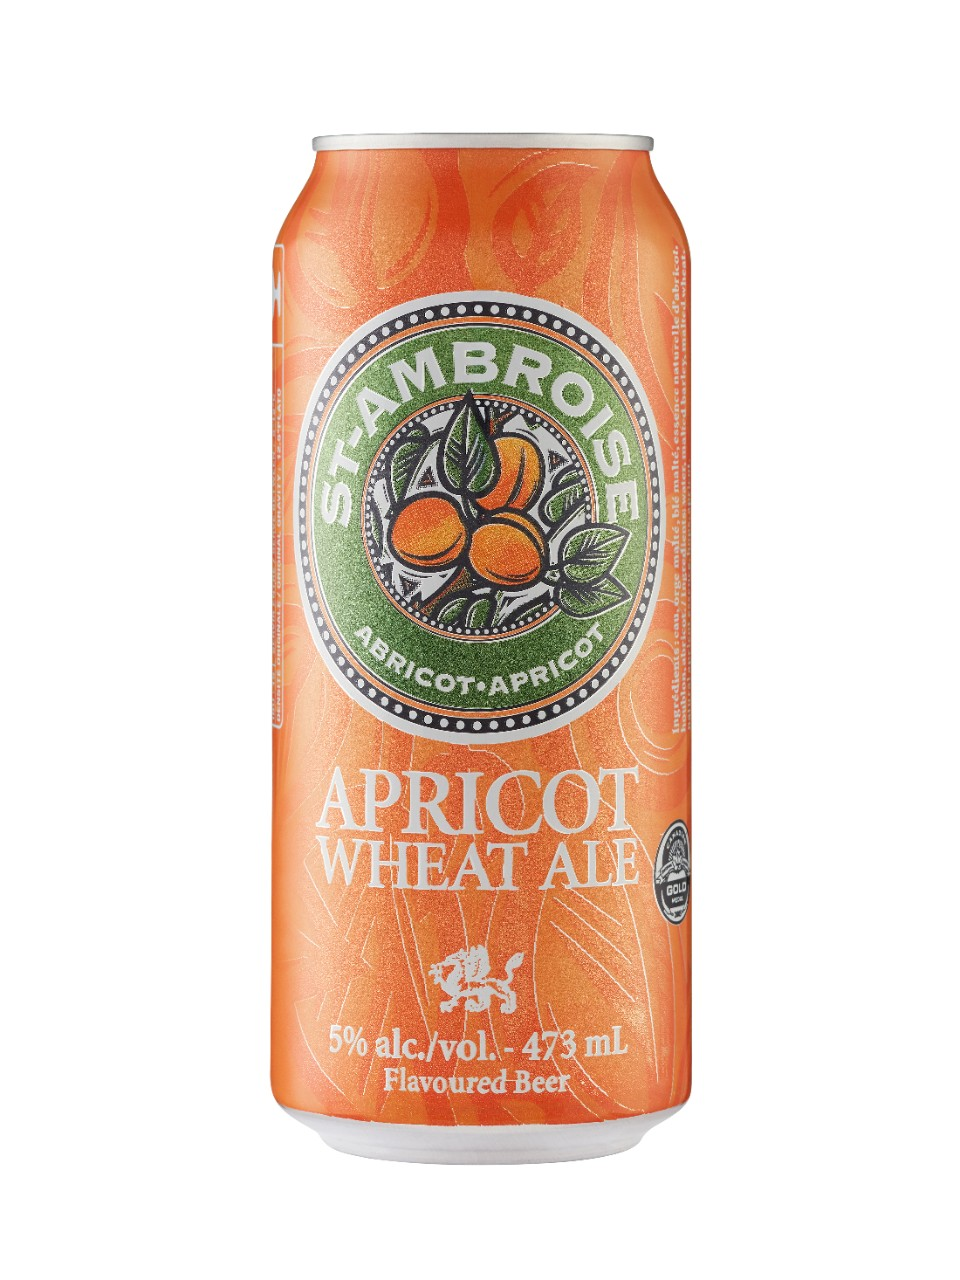 Image for St-Ambroise Apricot Wheat Ale from LCBO